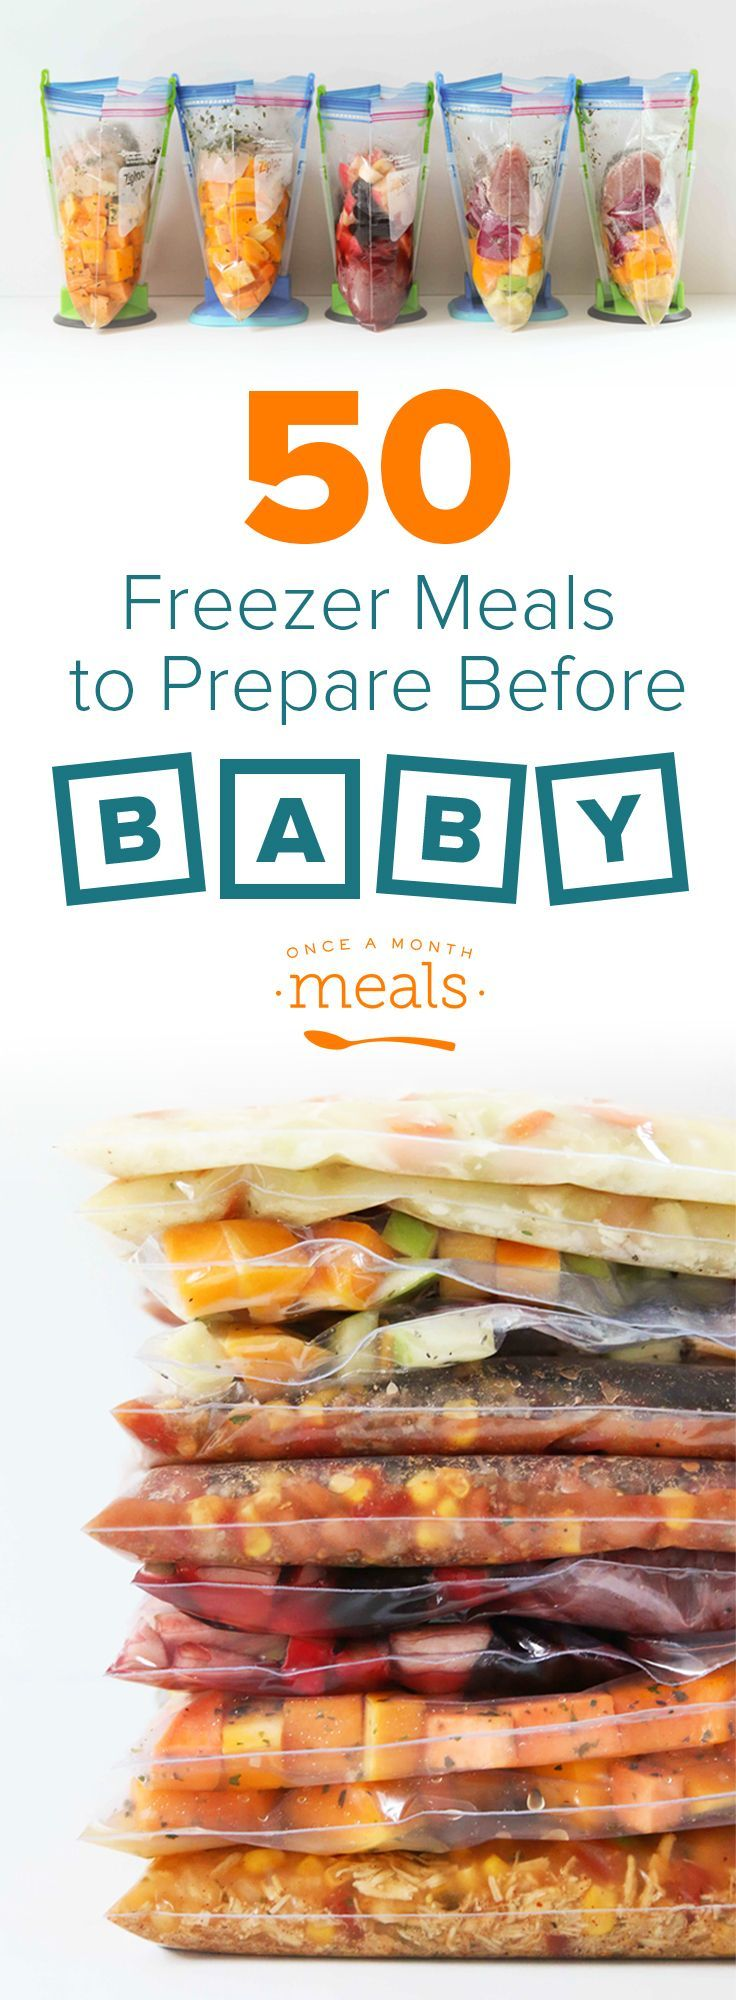 50 meals to help you stock the freezer before baby arrives! These freezer meals will save your sanity!